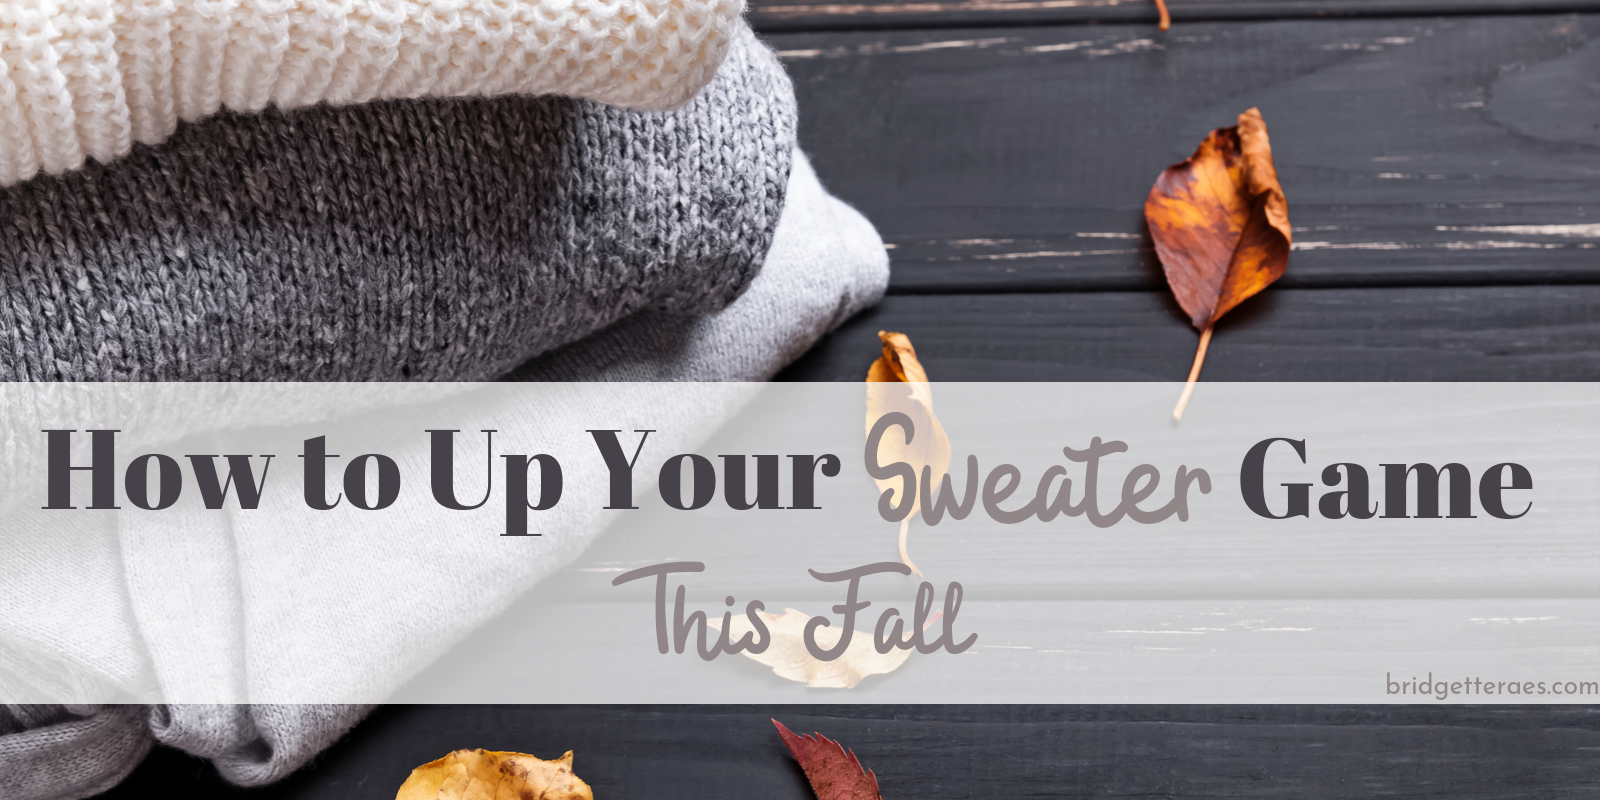 How to Up Your Sweater Game this Fall